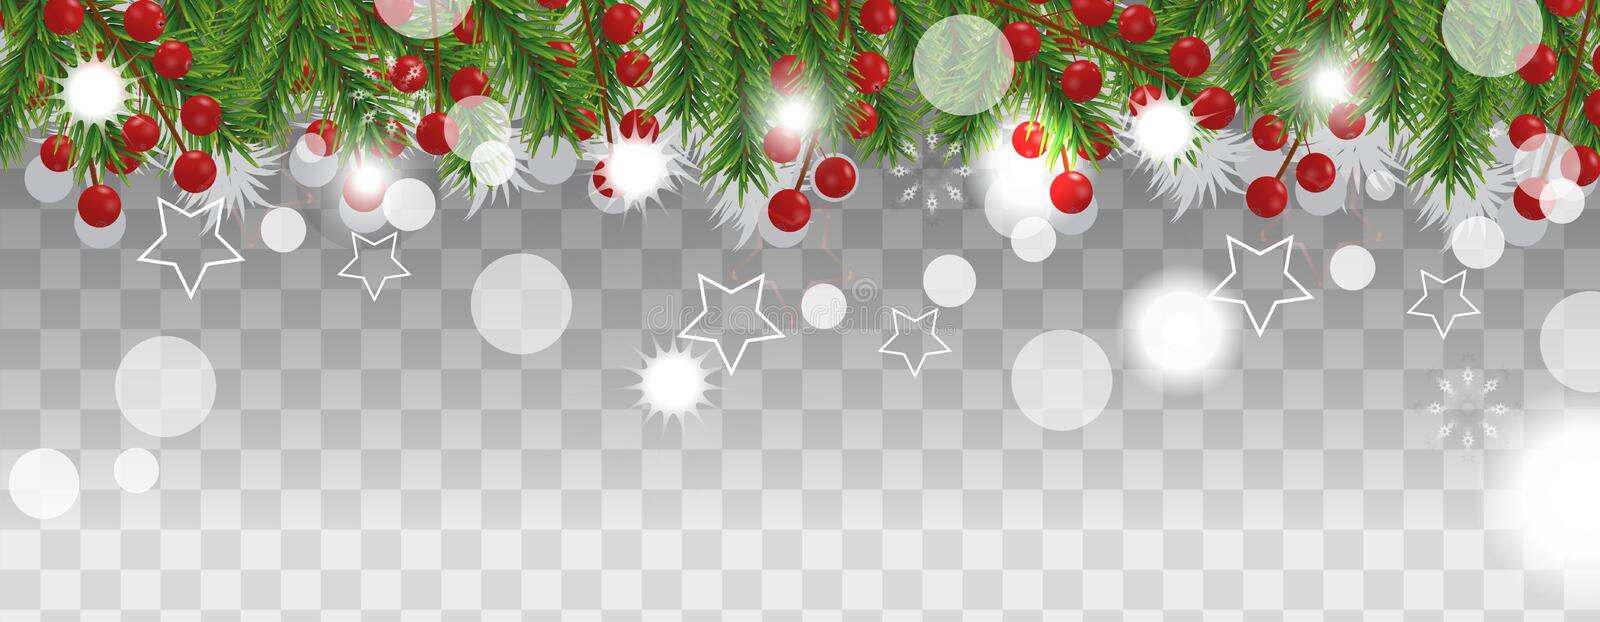 Christmas and happy New Year border of Christmas tree branches with holly berry on transparent background. Holidays decoration. Ve stock illustration